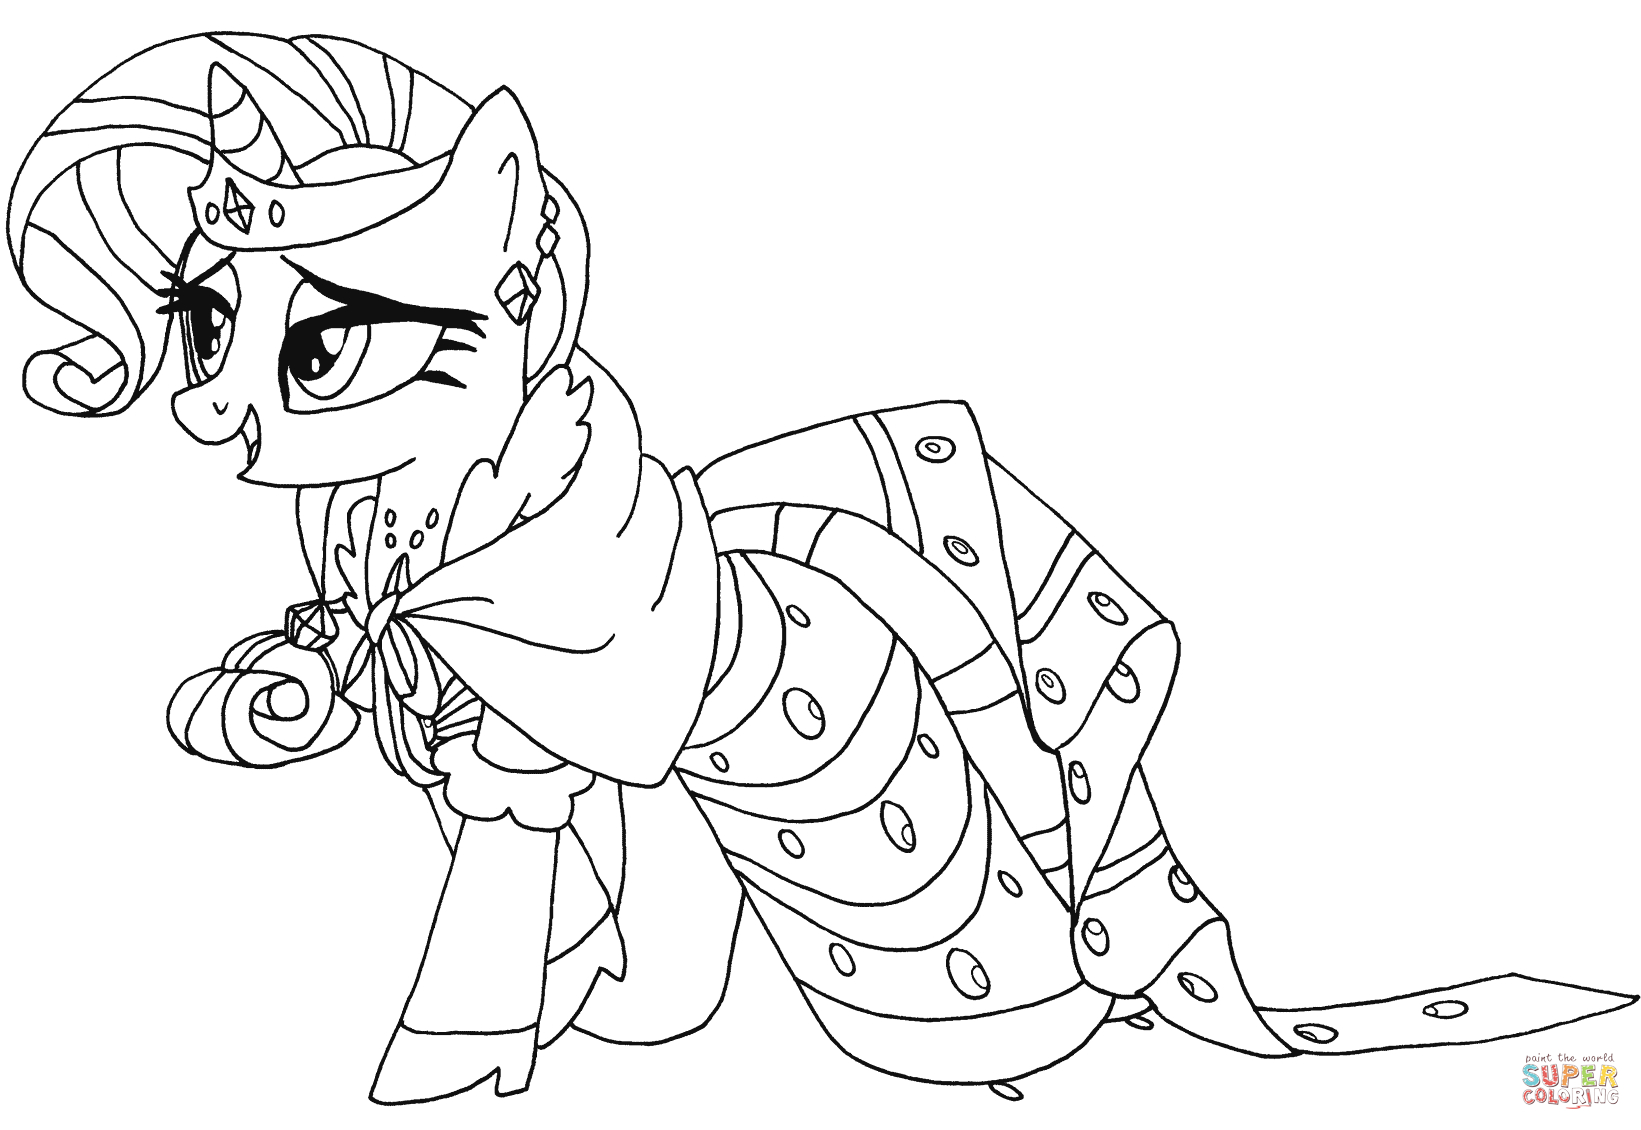 Rarity Coloring Pages My Little Pony Rarity Coloring Page Free Printable Coloring Pages